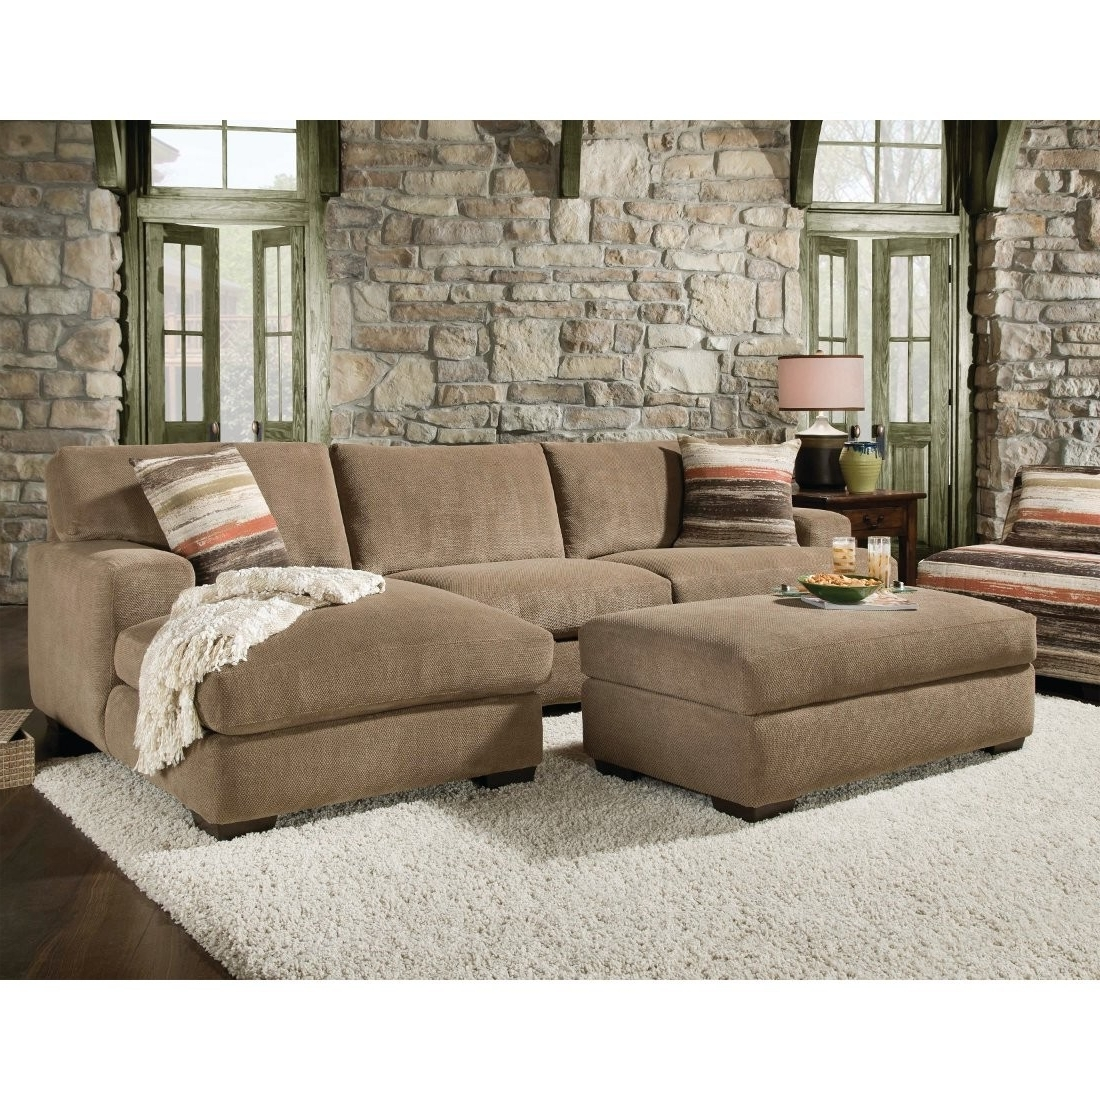 Trendy Beautiful Sectional Sofa With Chaise And Ottoman Pictures Within Sectional Couches With Large Ottoman (View 14 of 15)